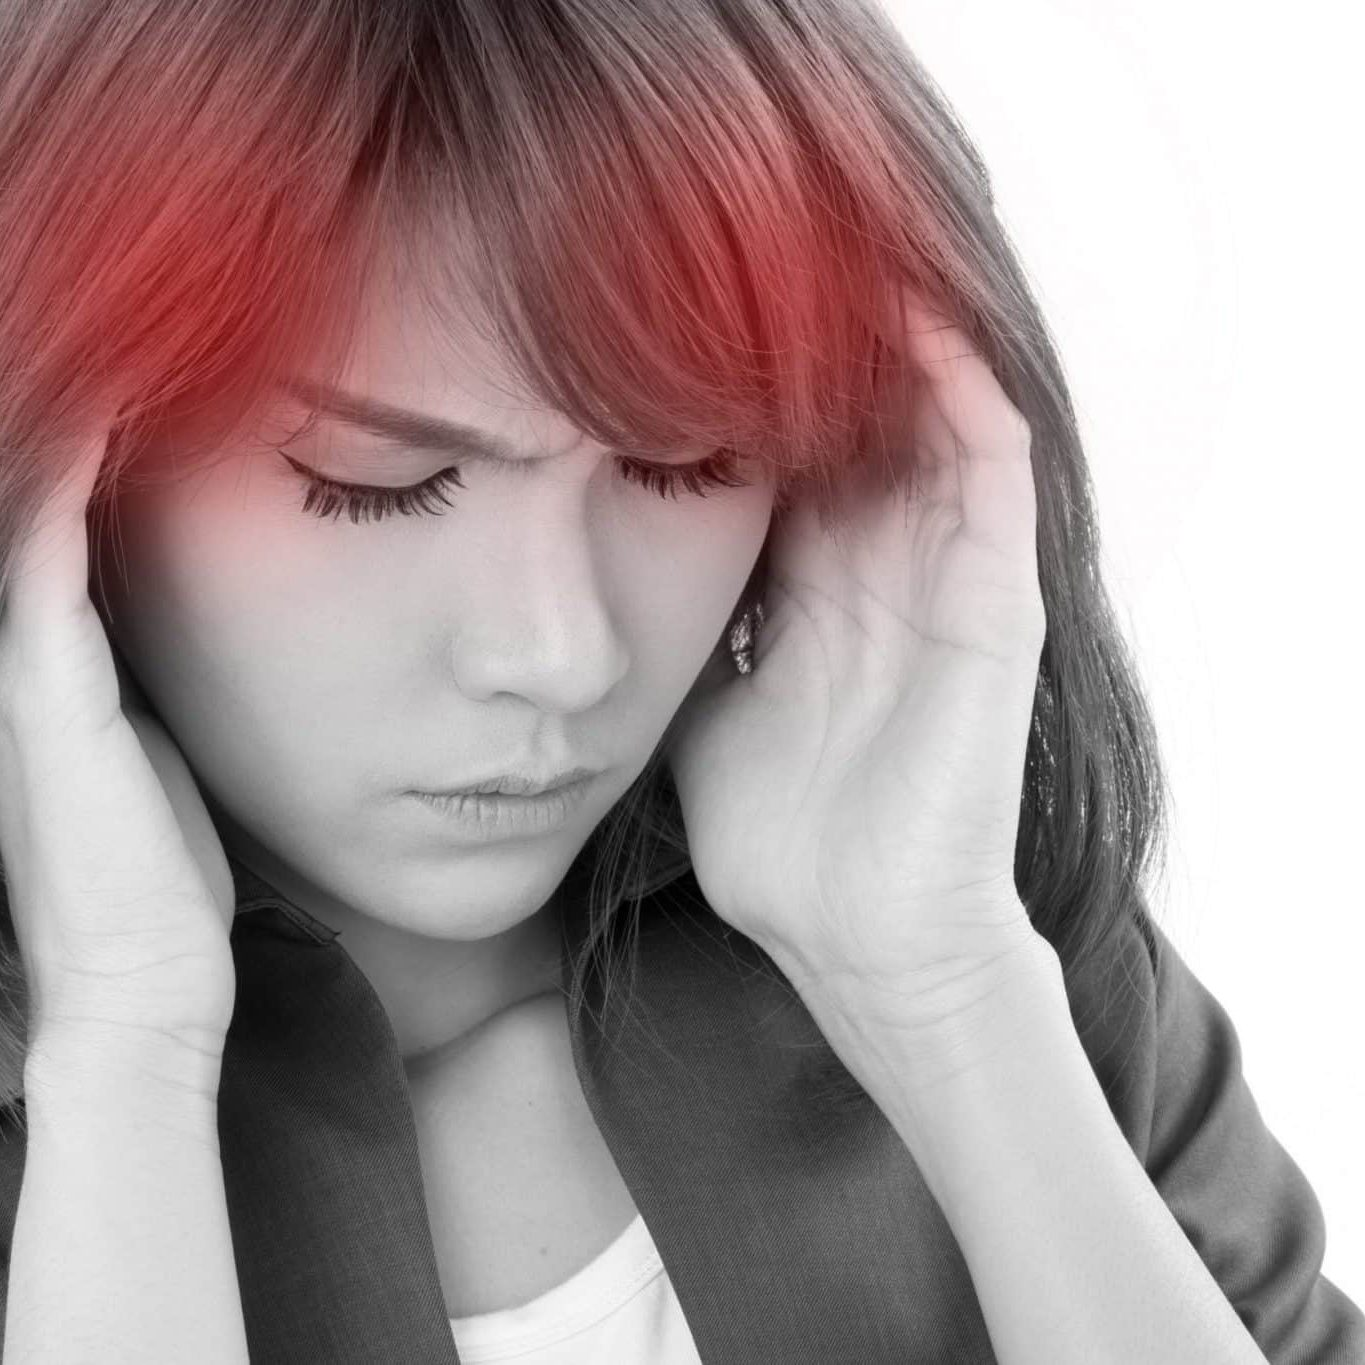 woman suffers from headache, stress, overwork, migraine on white isolated background